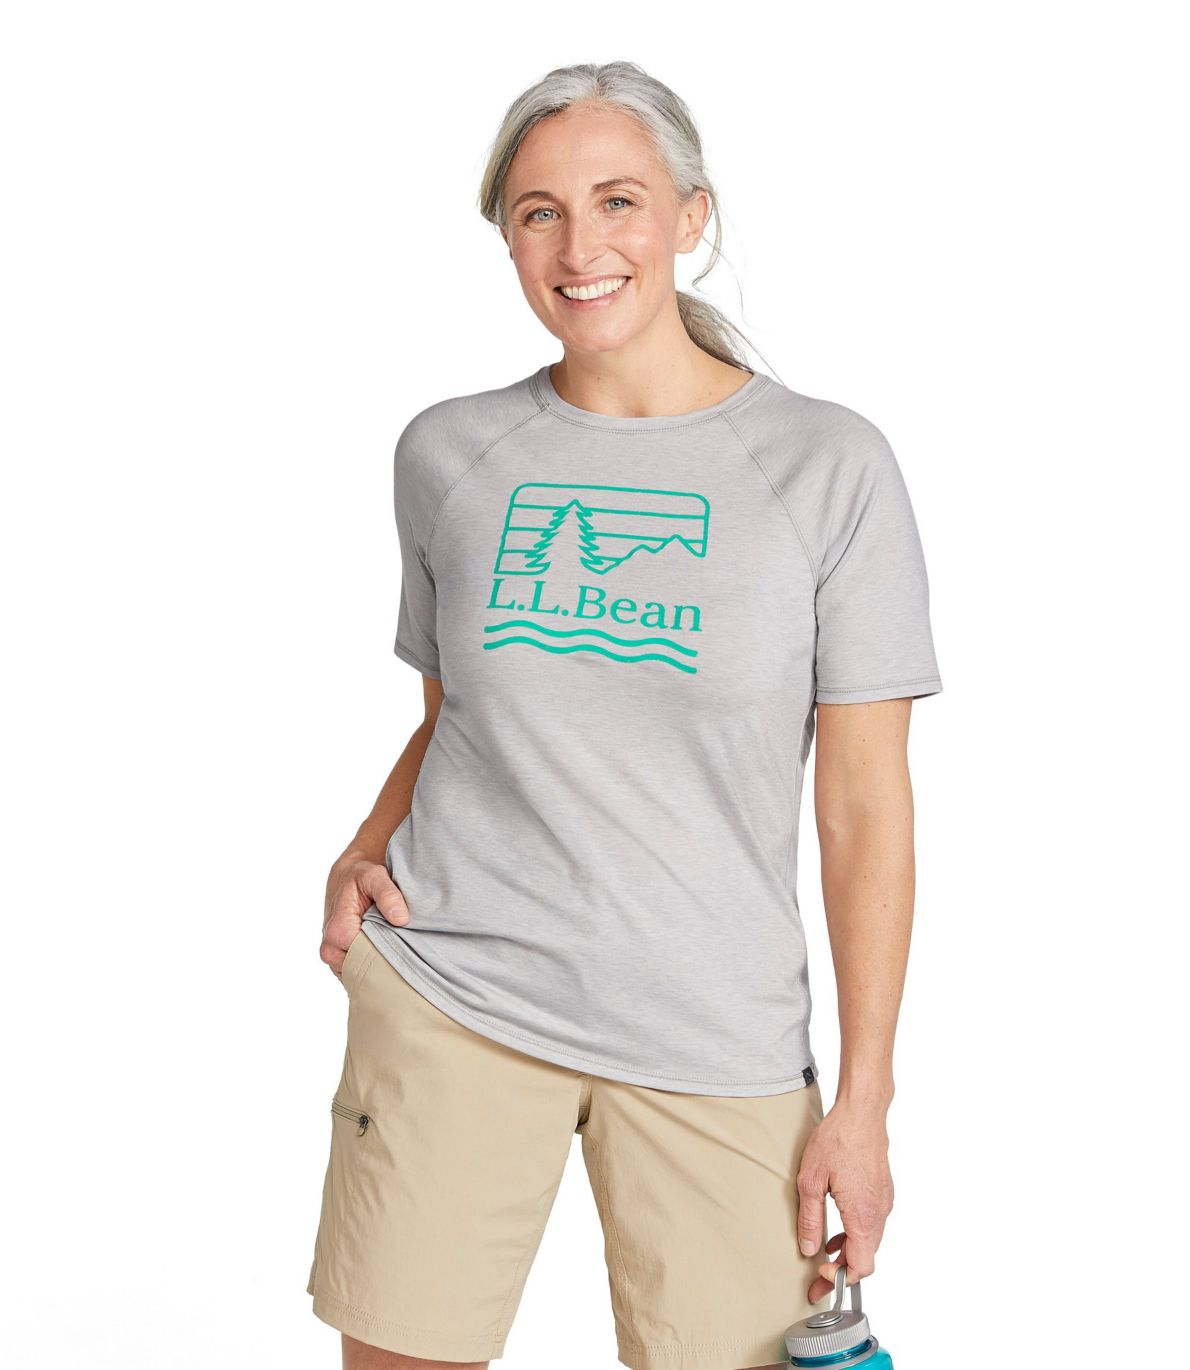 Women's Everyday SunSmart™ Tee, Crewneck Short-Sleeve, Graphic